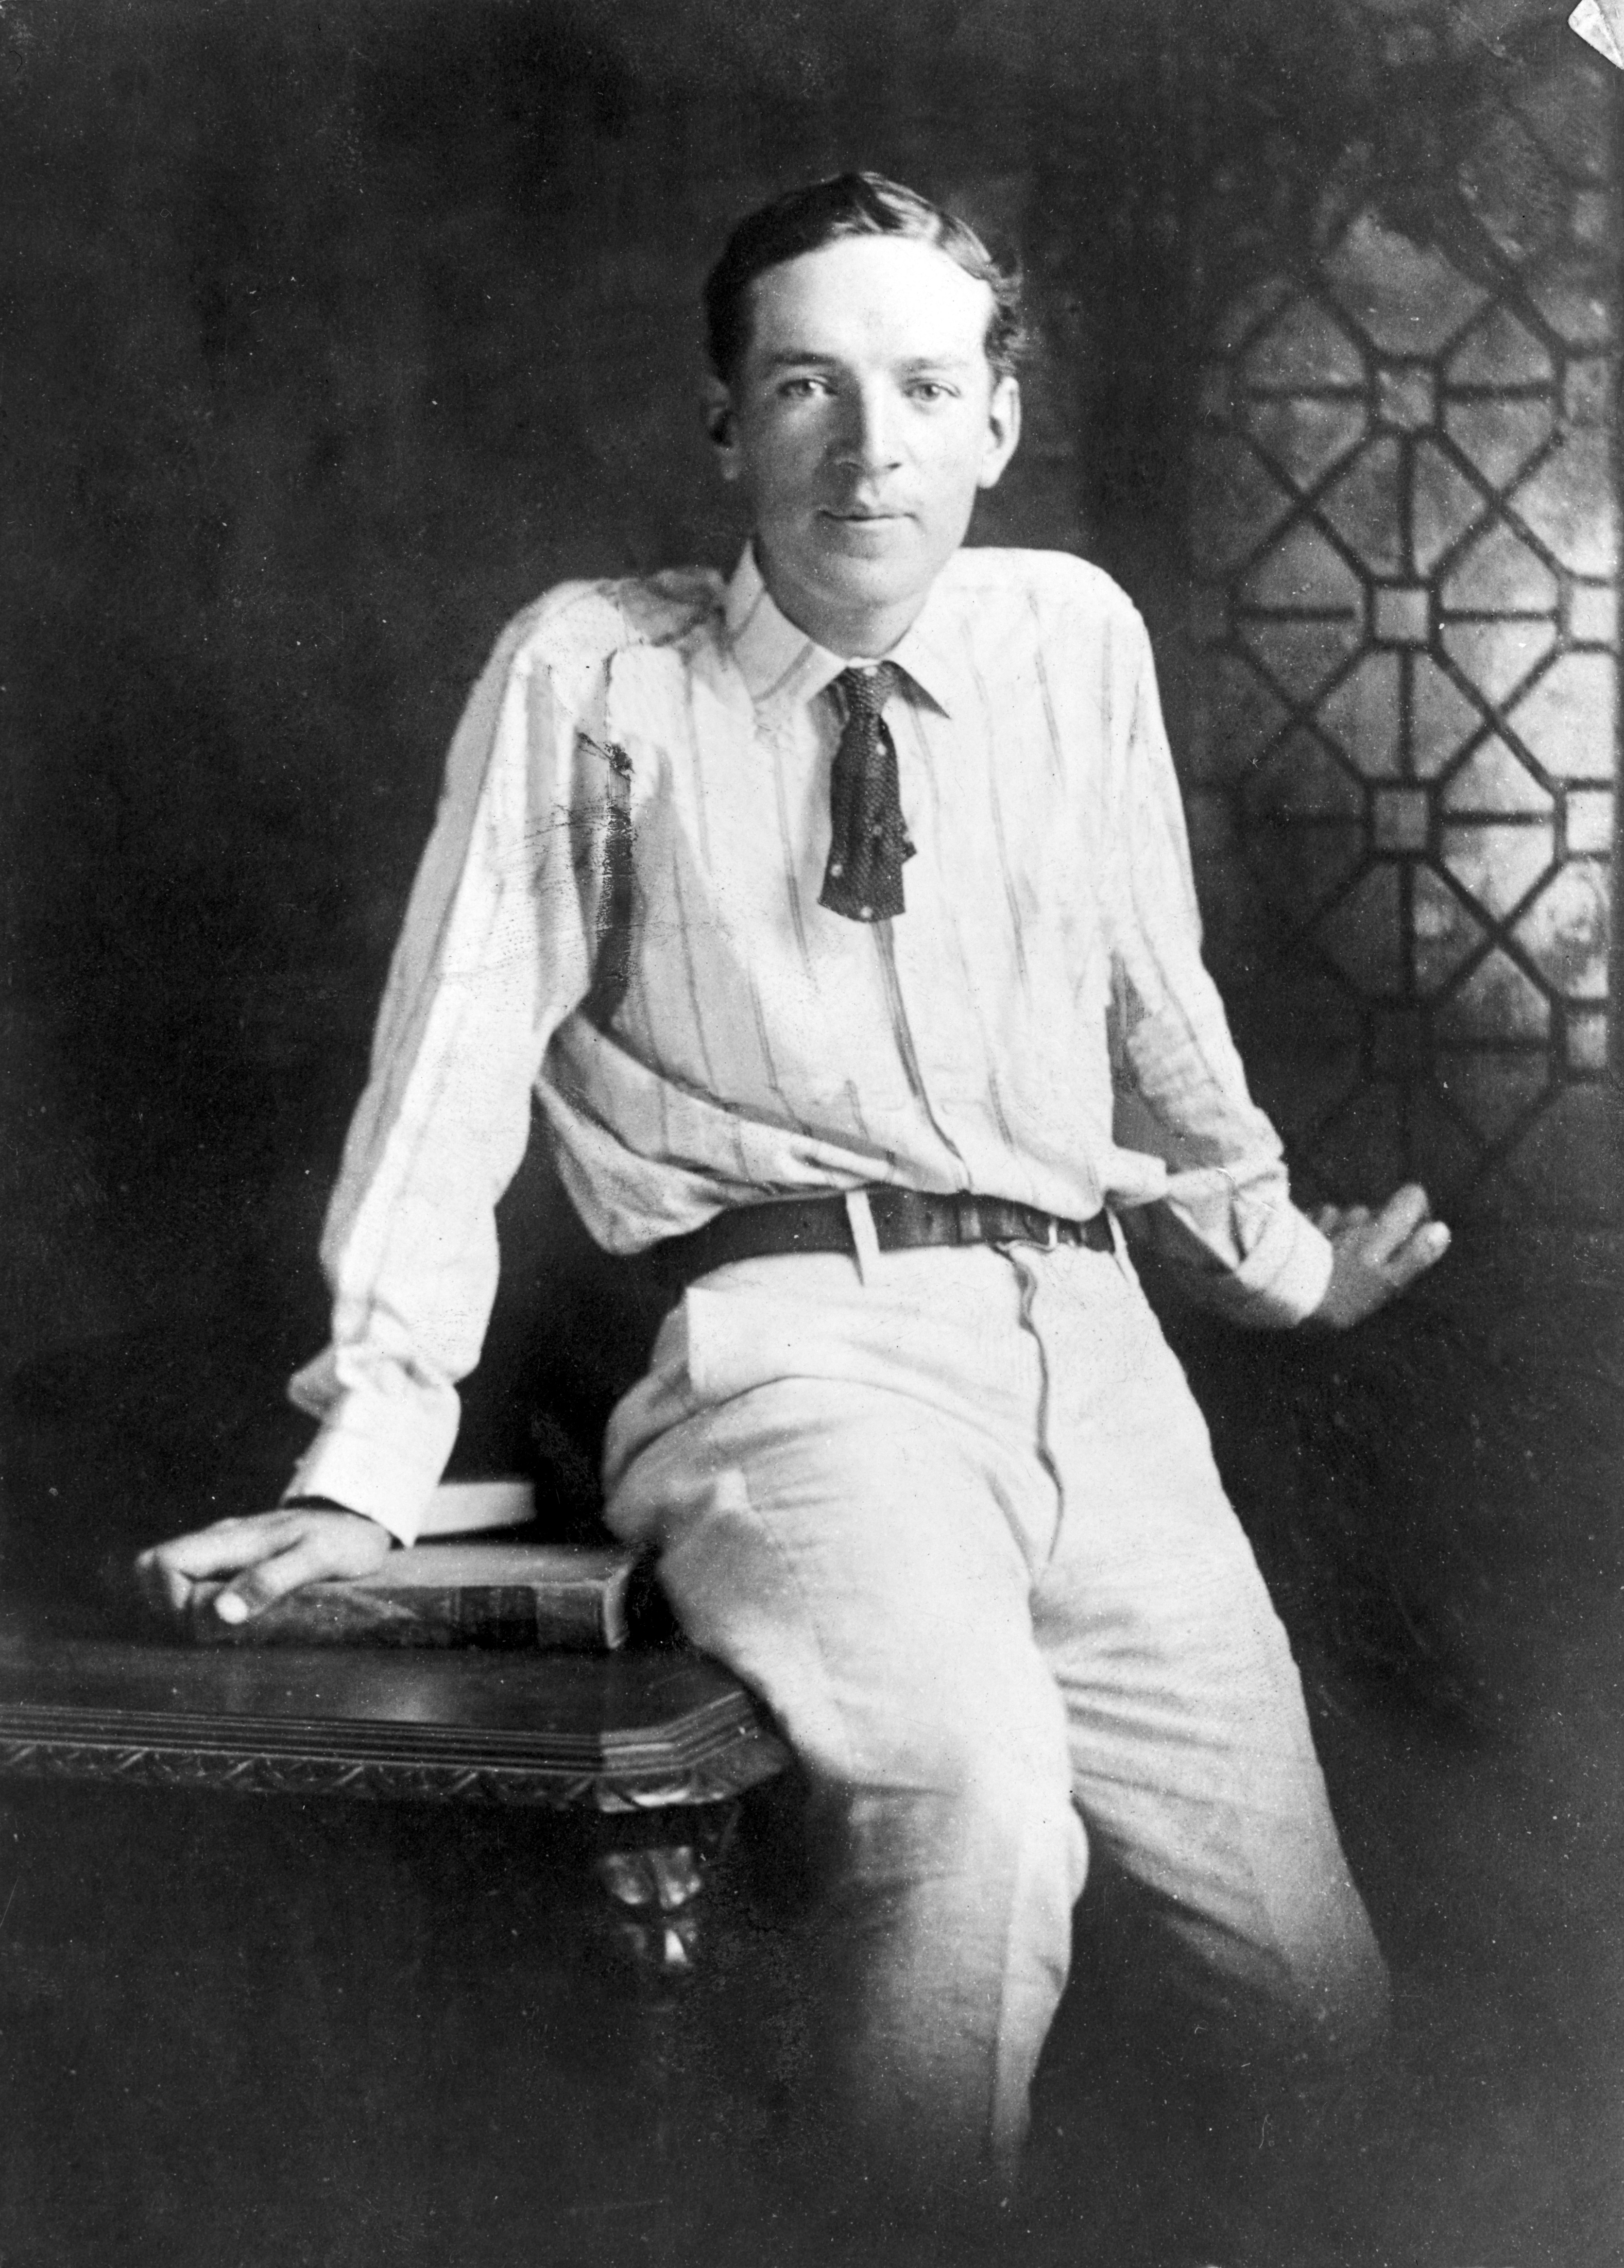 socialism in the jungle by upton sinclair Socialism and upton sinclair's the jungle in 1906, upton sinclair's book the jungle was published in book form it had previously been published as a newspaper serial in 1905.